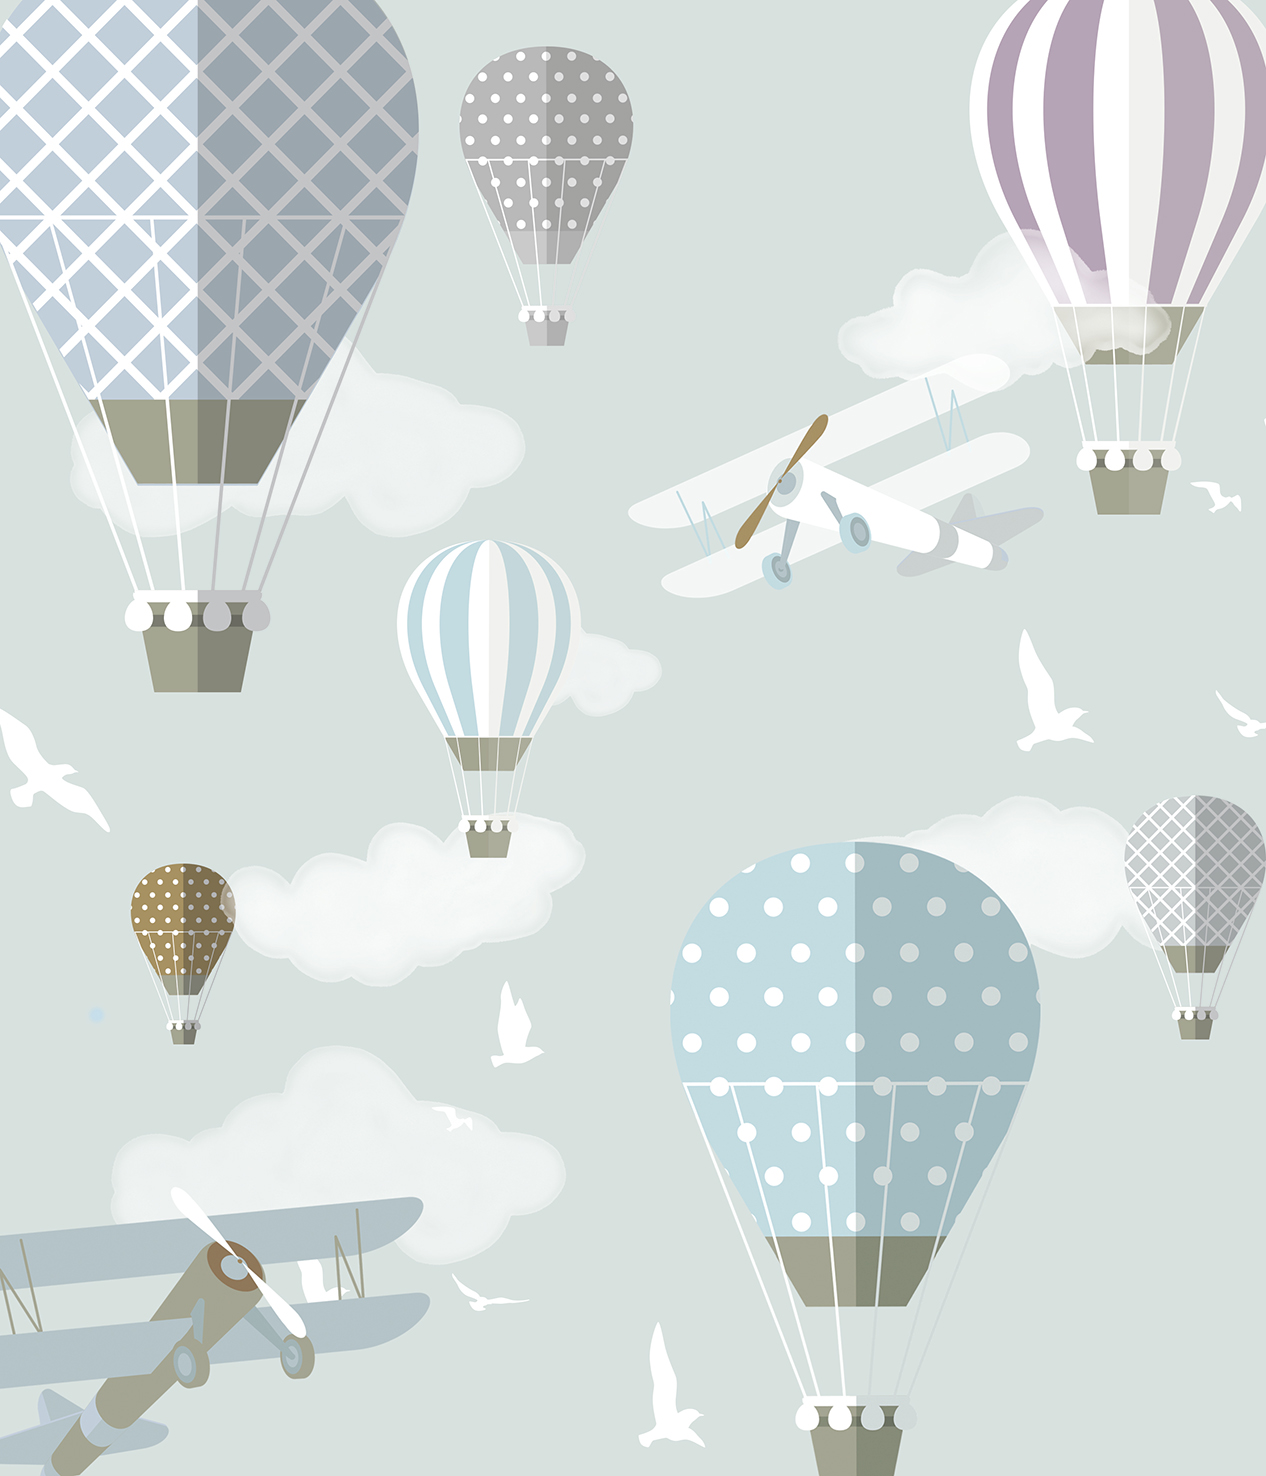 Airplanes_and_balloons_wallpaper